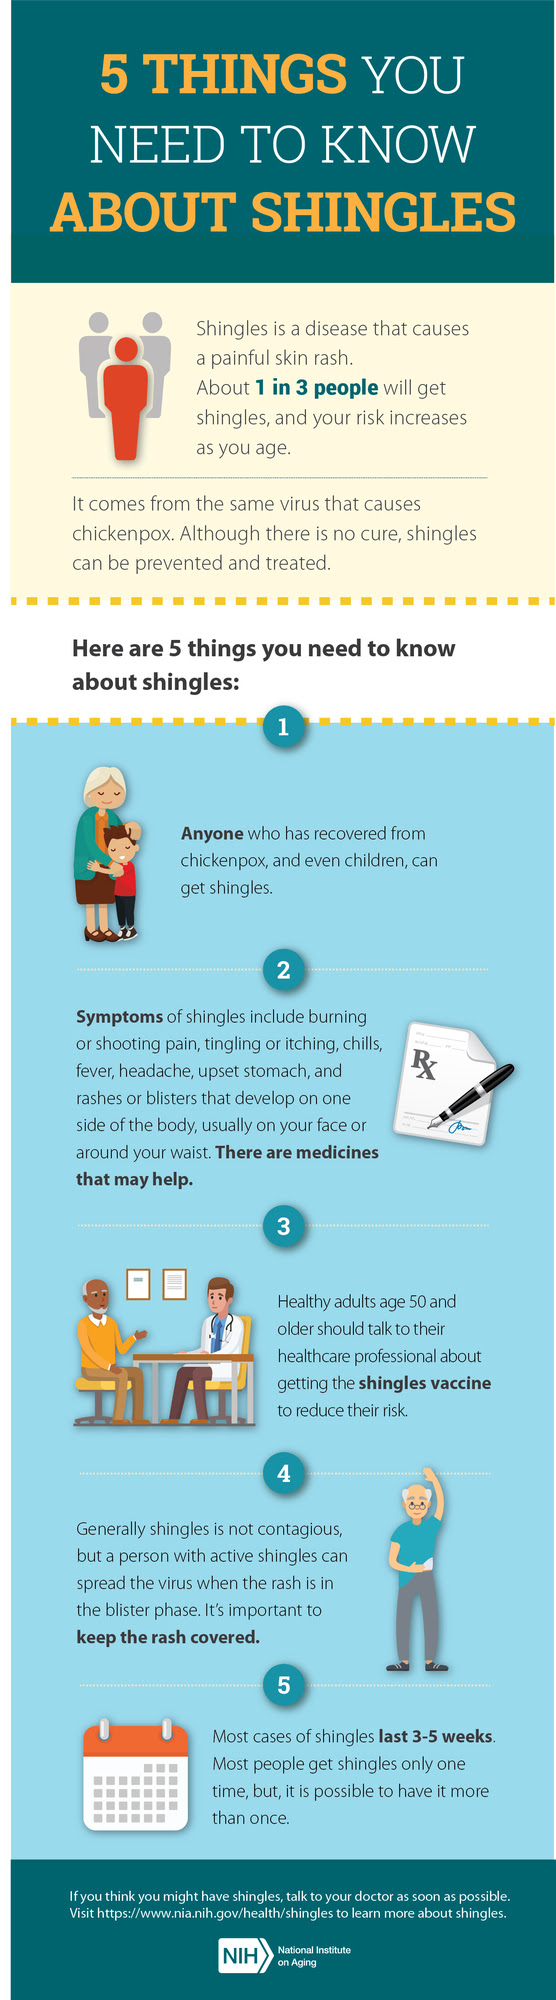 Shingles infographic. Follow link for full infographic.